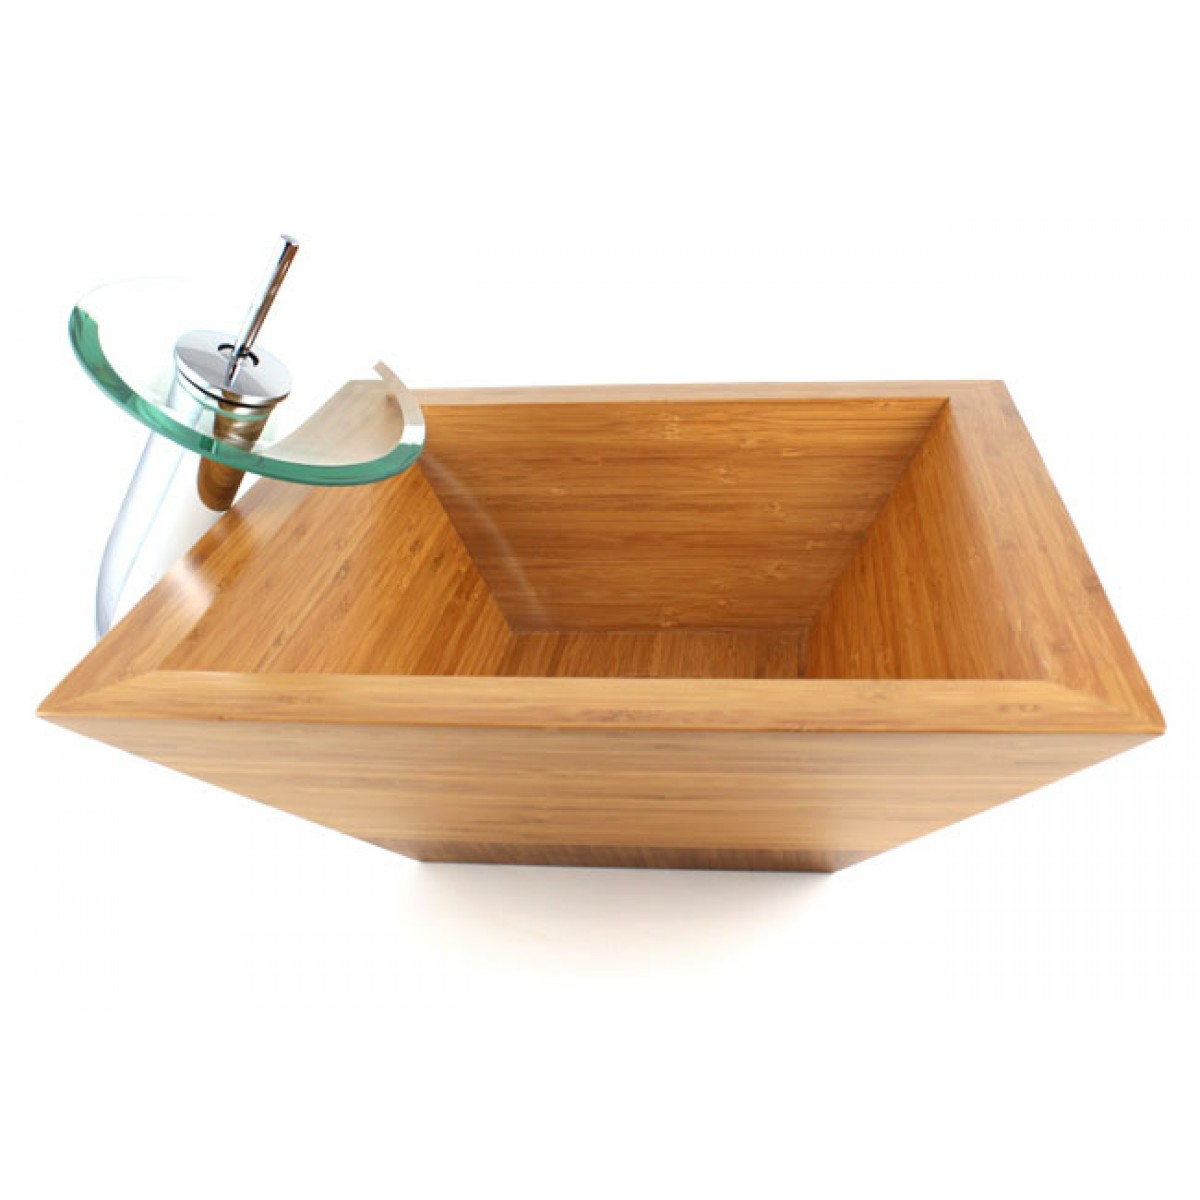 Guardian - Bamboo Countertop Bathroom Lavatory Vessel Sink - 16-3/4 x ...